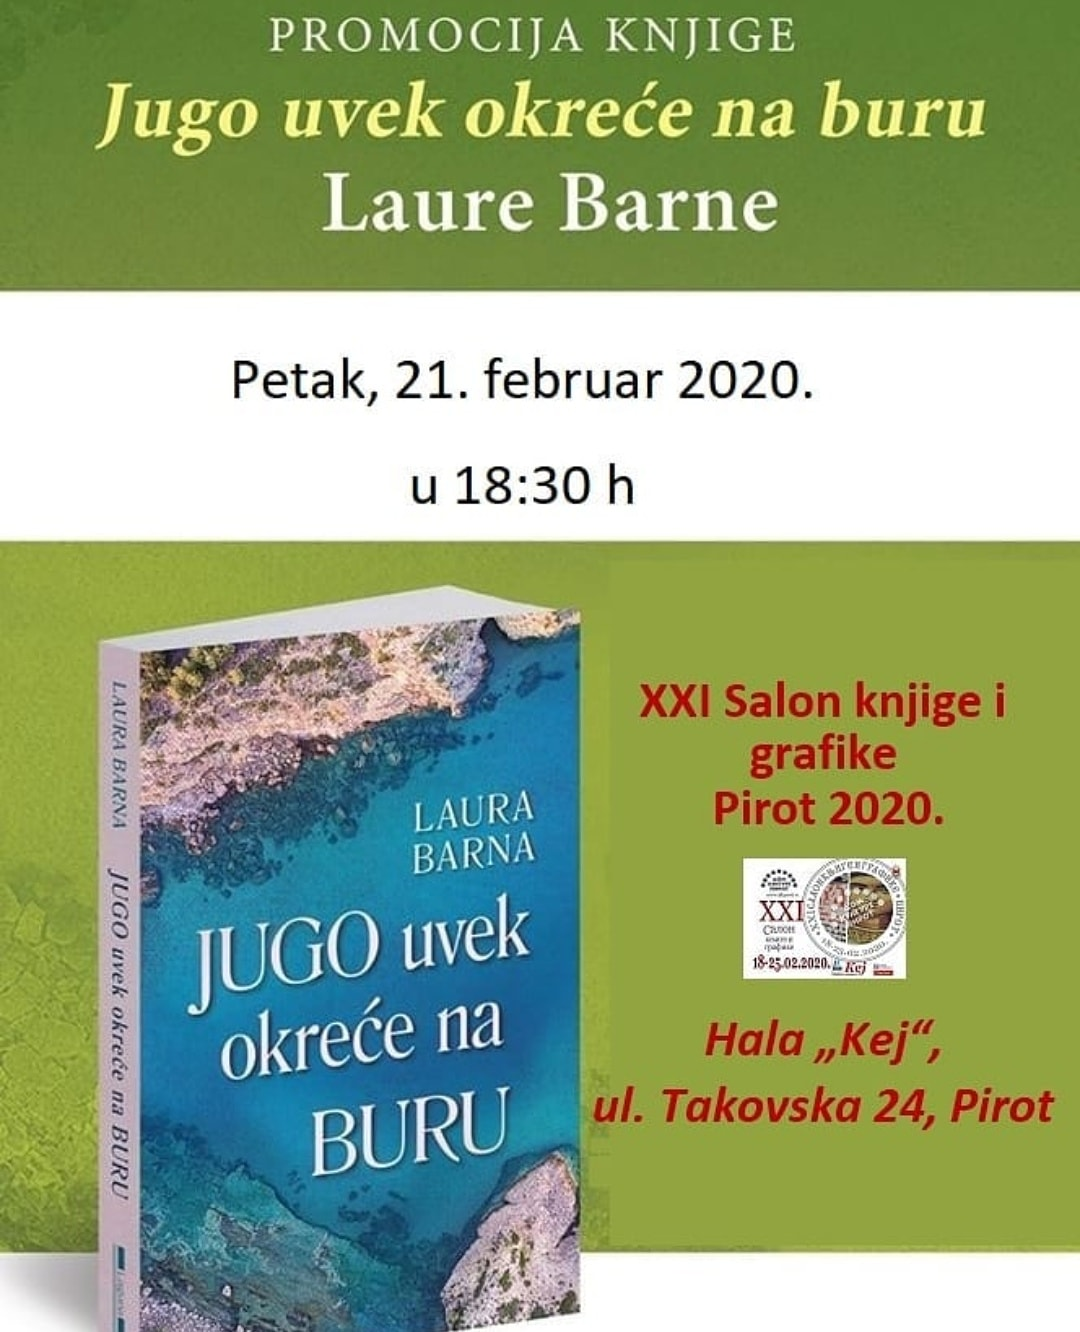 Photo of Laura Barna večeras od 18:30 h na Salonu knjige